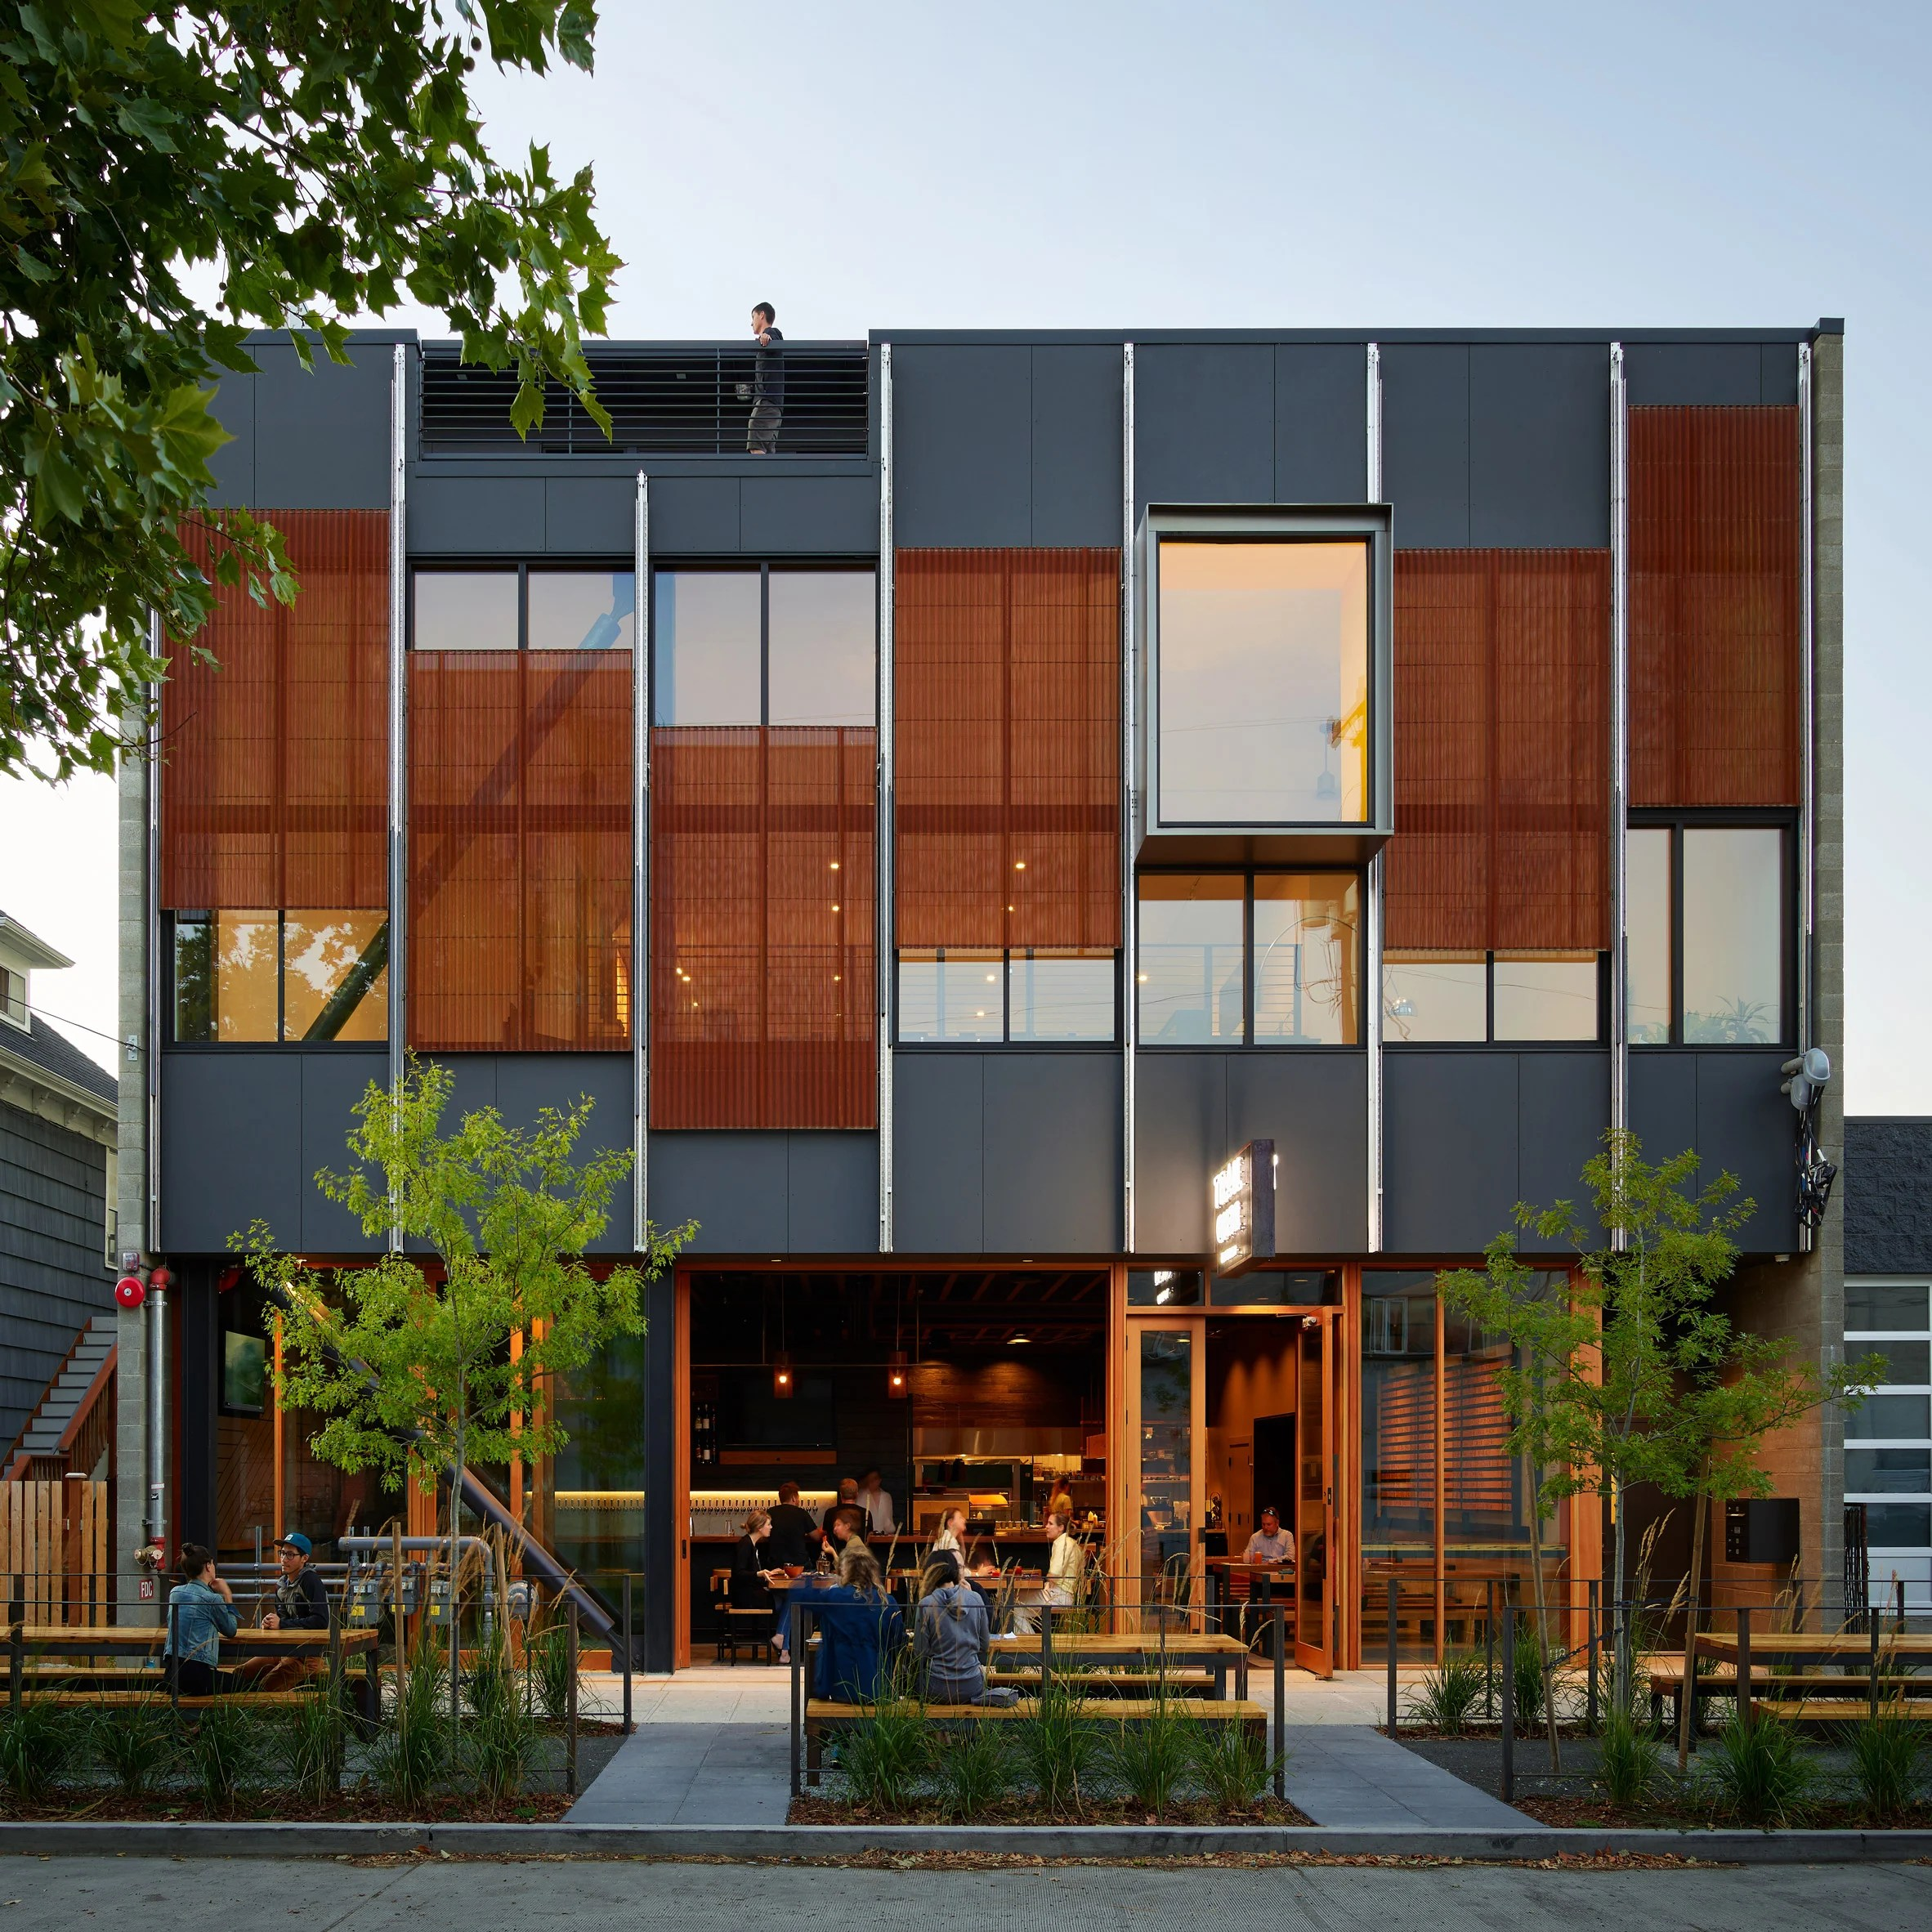 Trailbend Taproom restaurant and beerhall in Seattle Washington by Graham Baba Architects